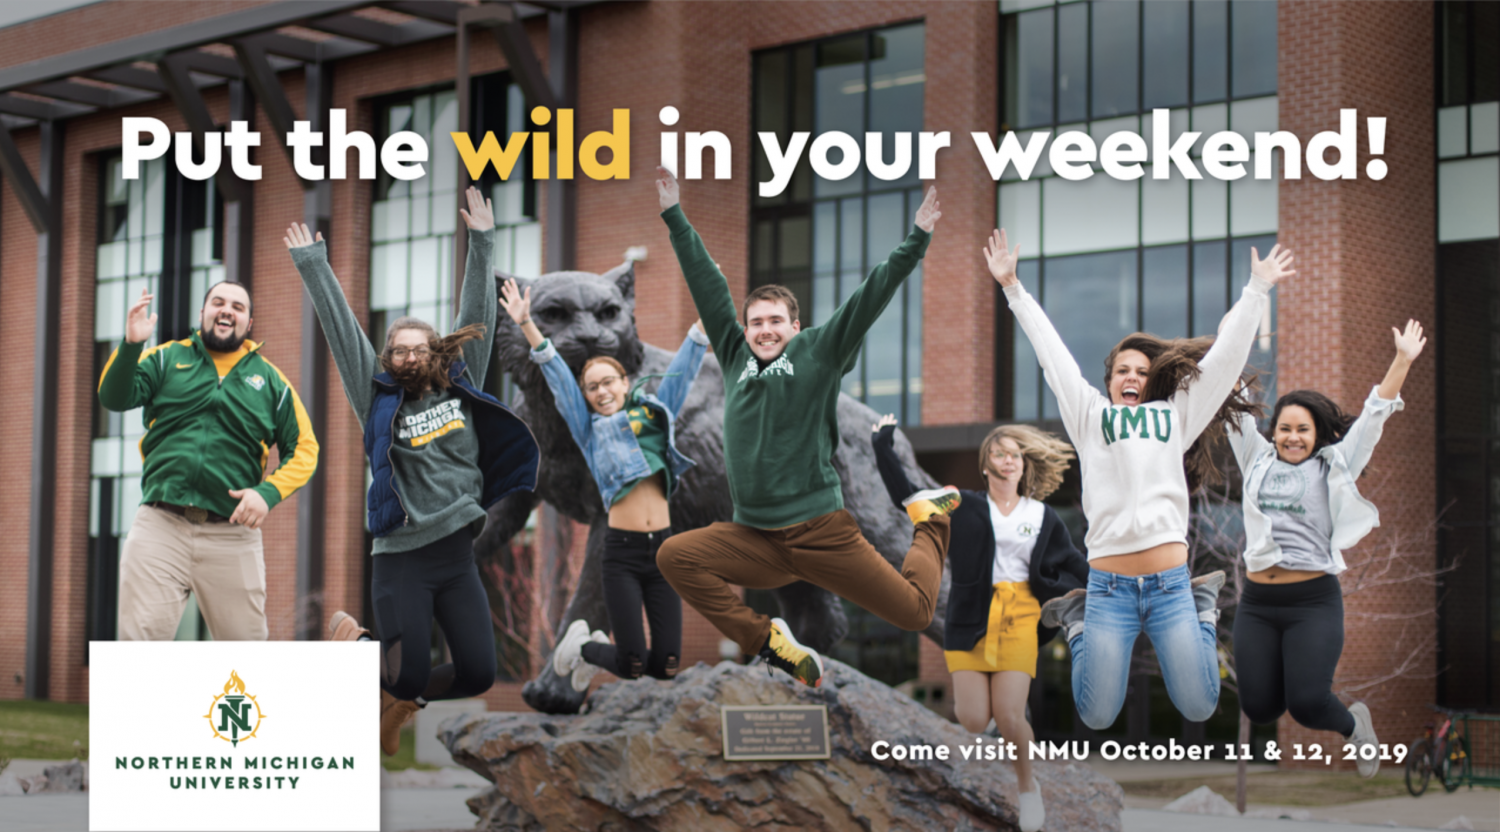 Put the Wild in Your Weekend Postcard